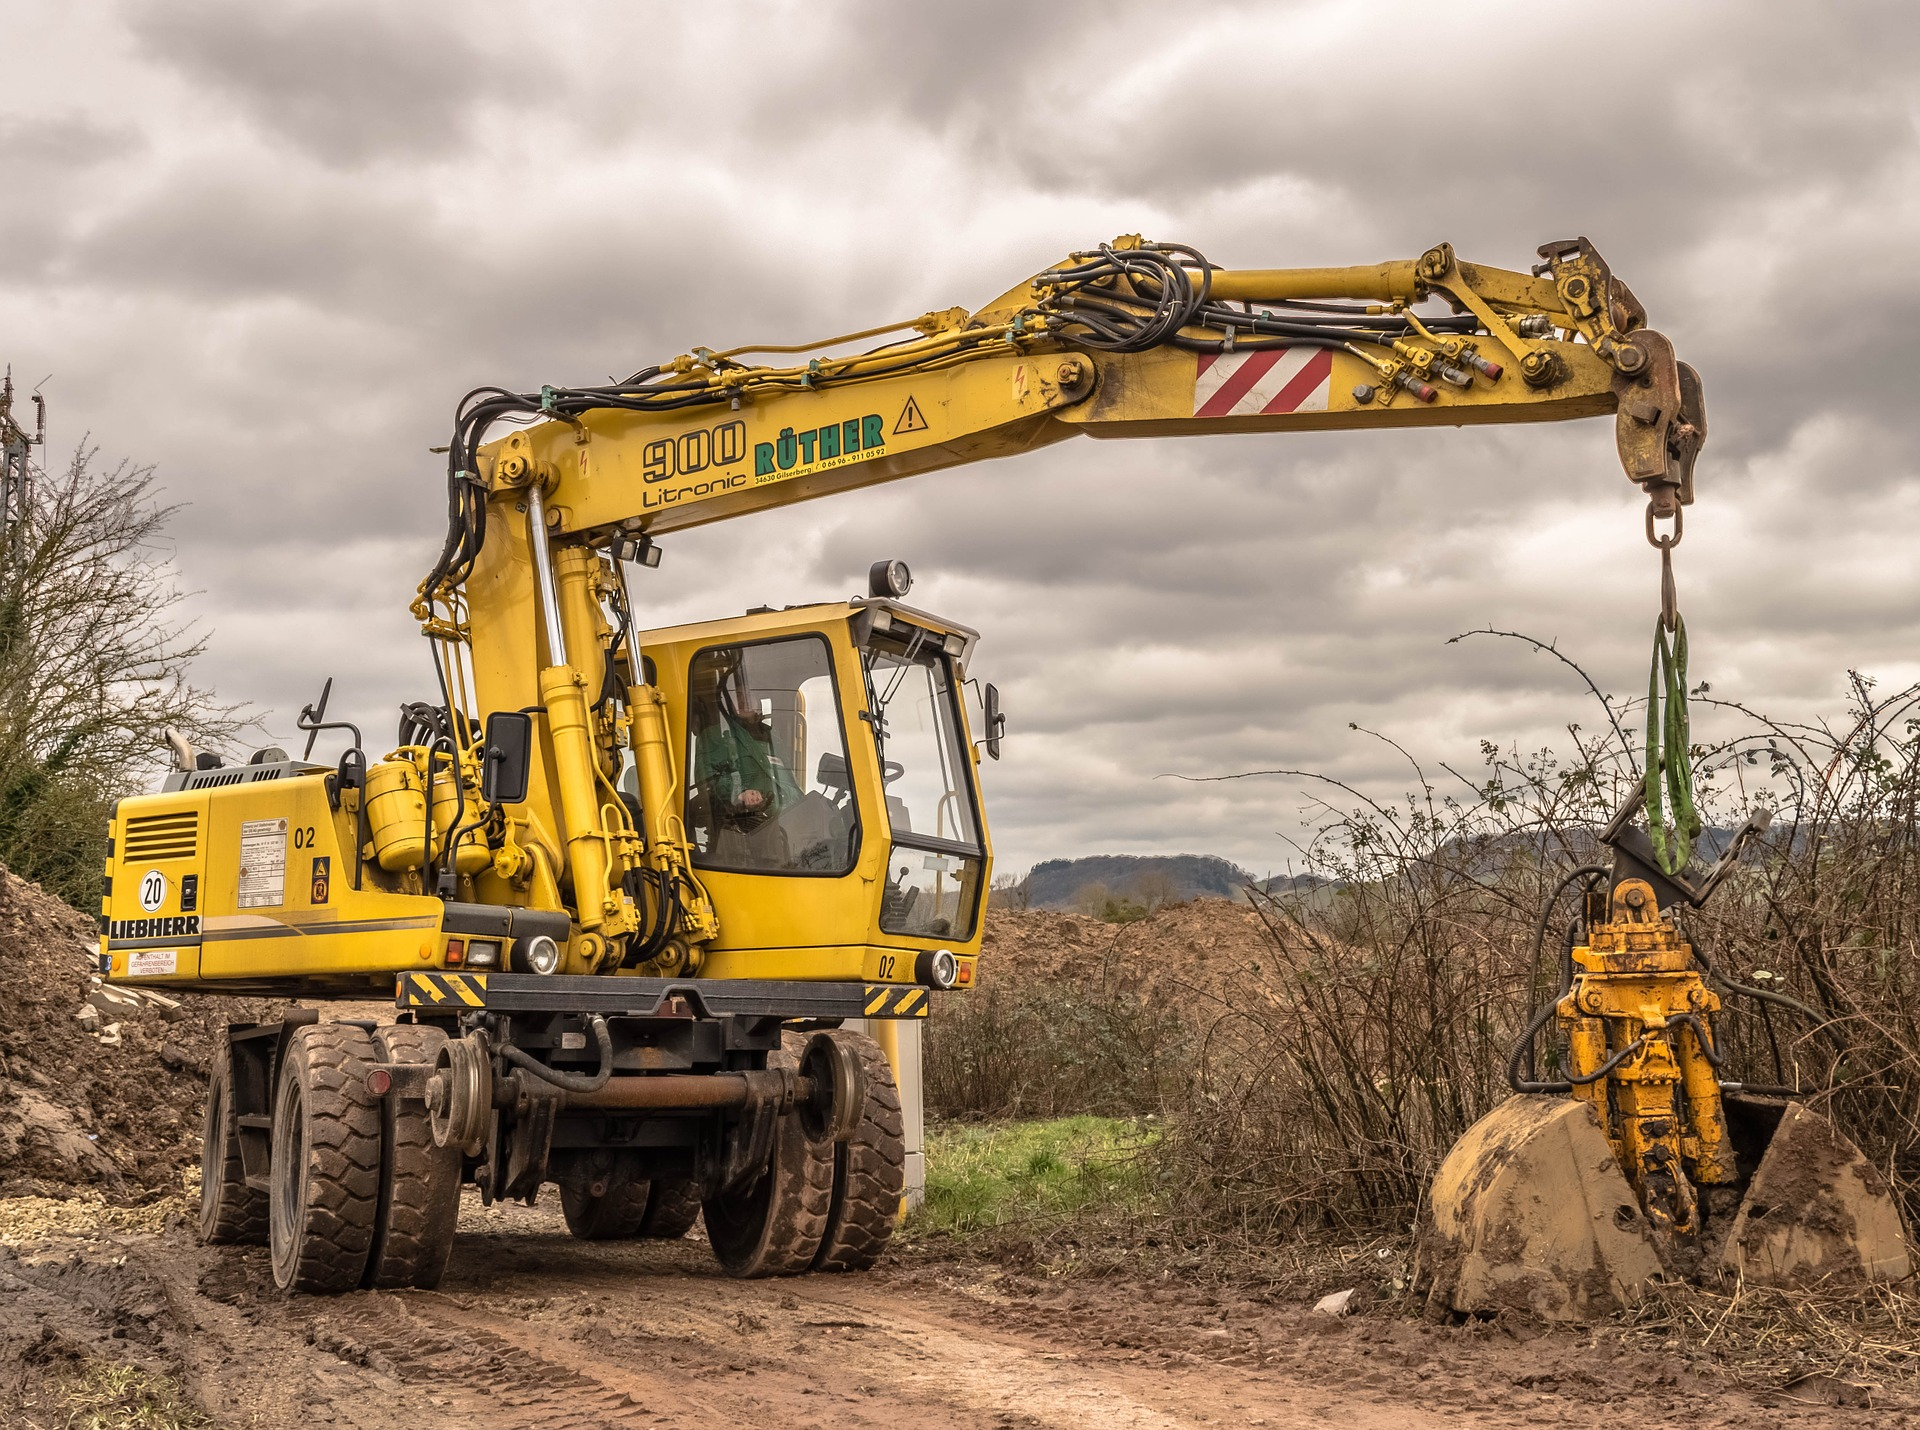 Excavator and backhoe Hauling and Transportation Services